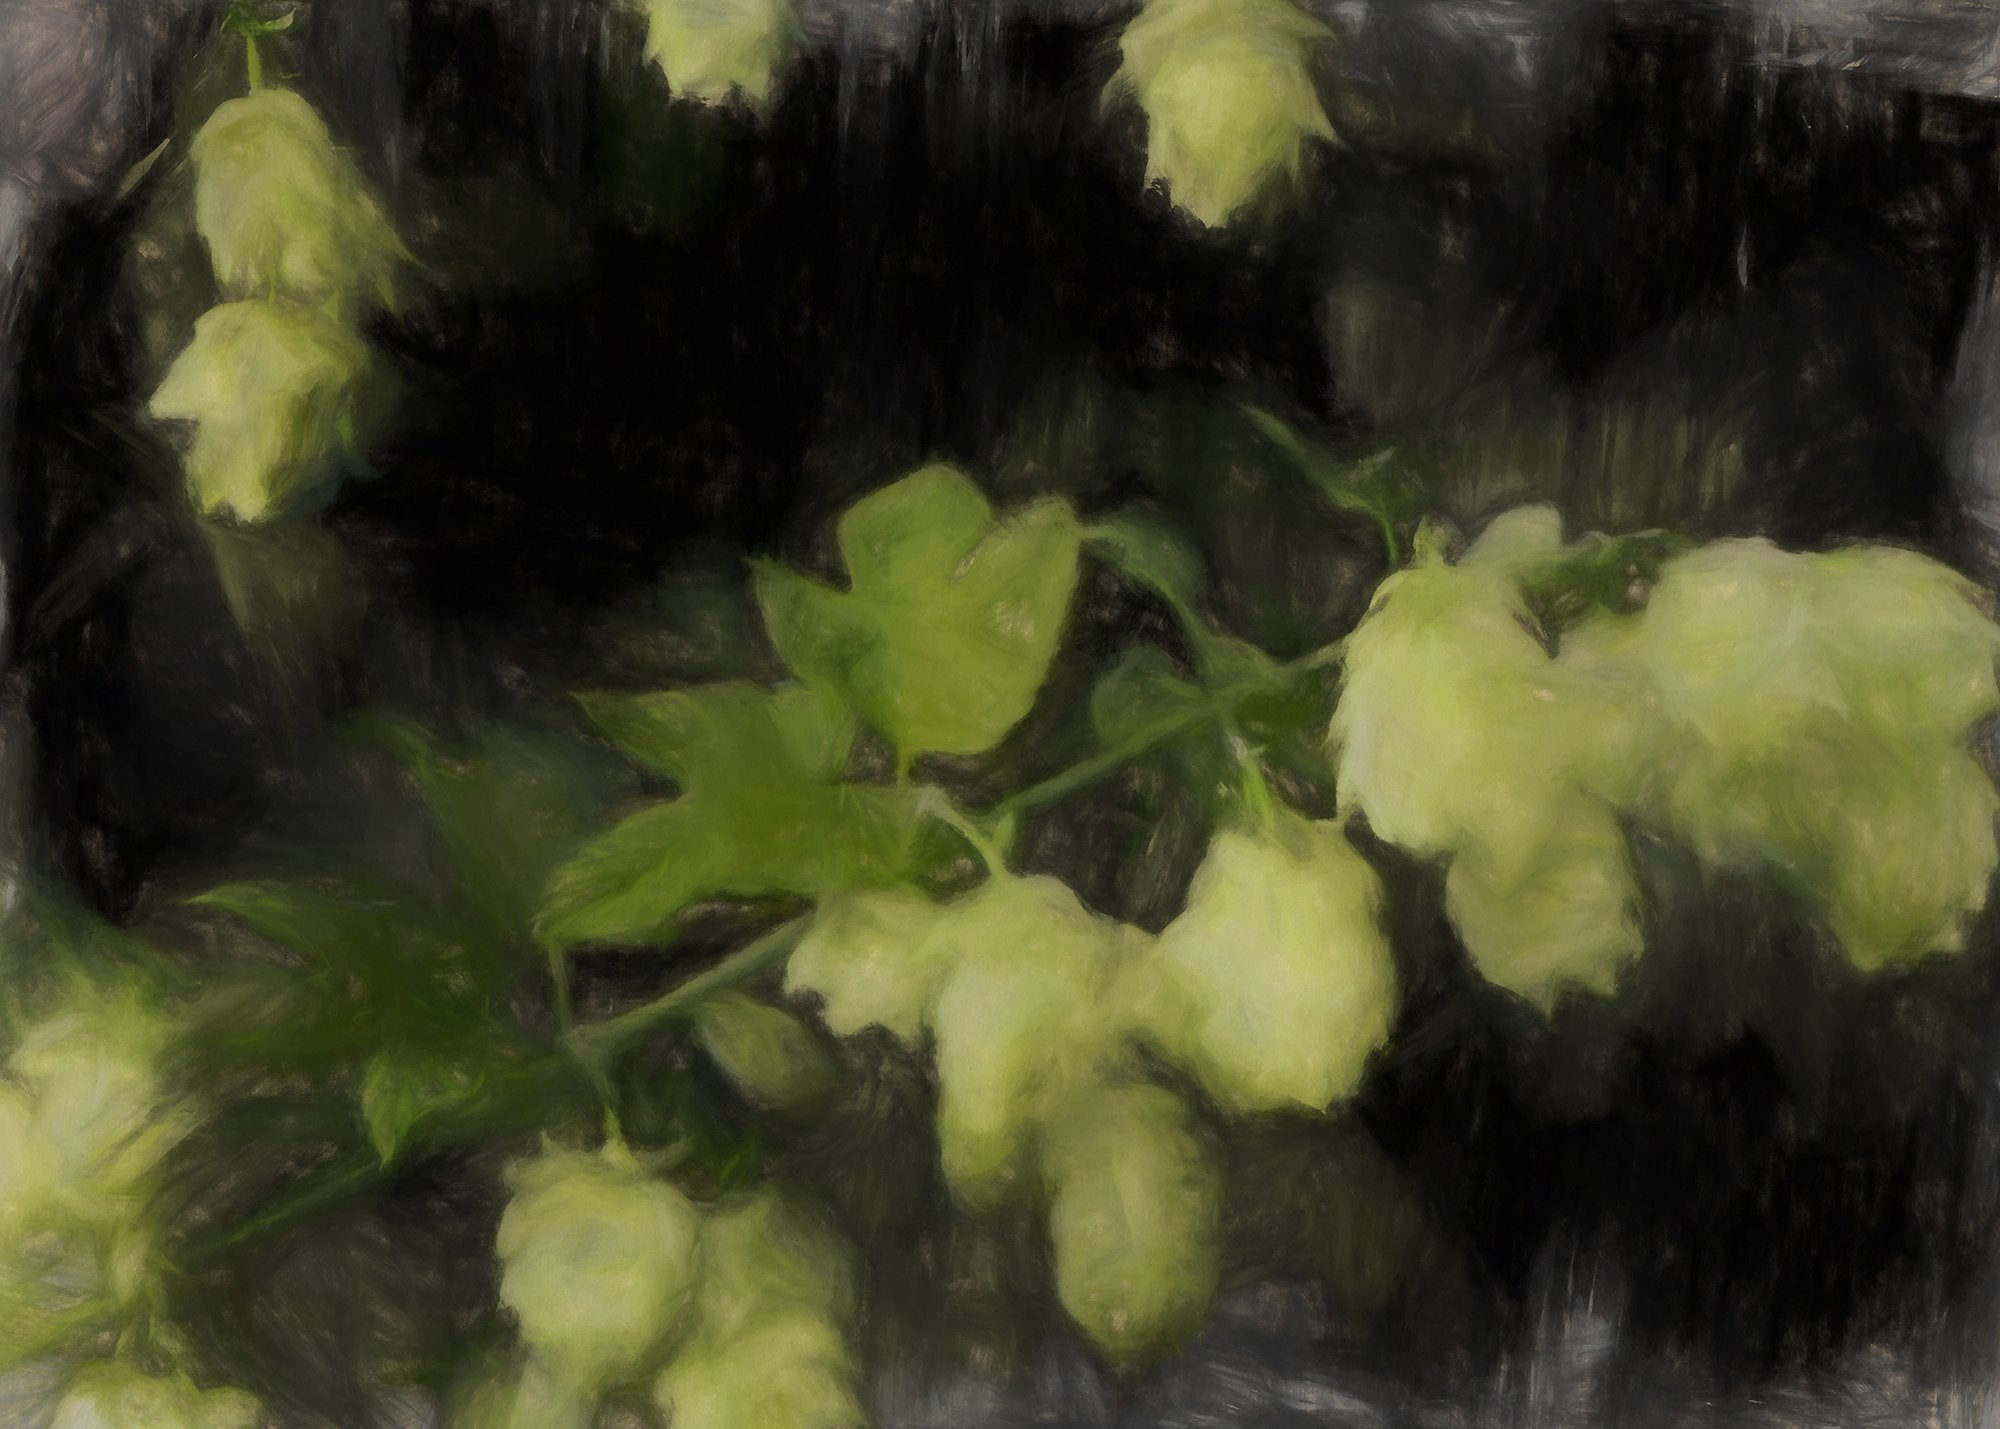 Humulus Lupulus (Hops), Reworked, Series 2